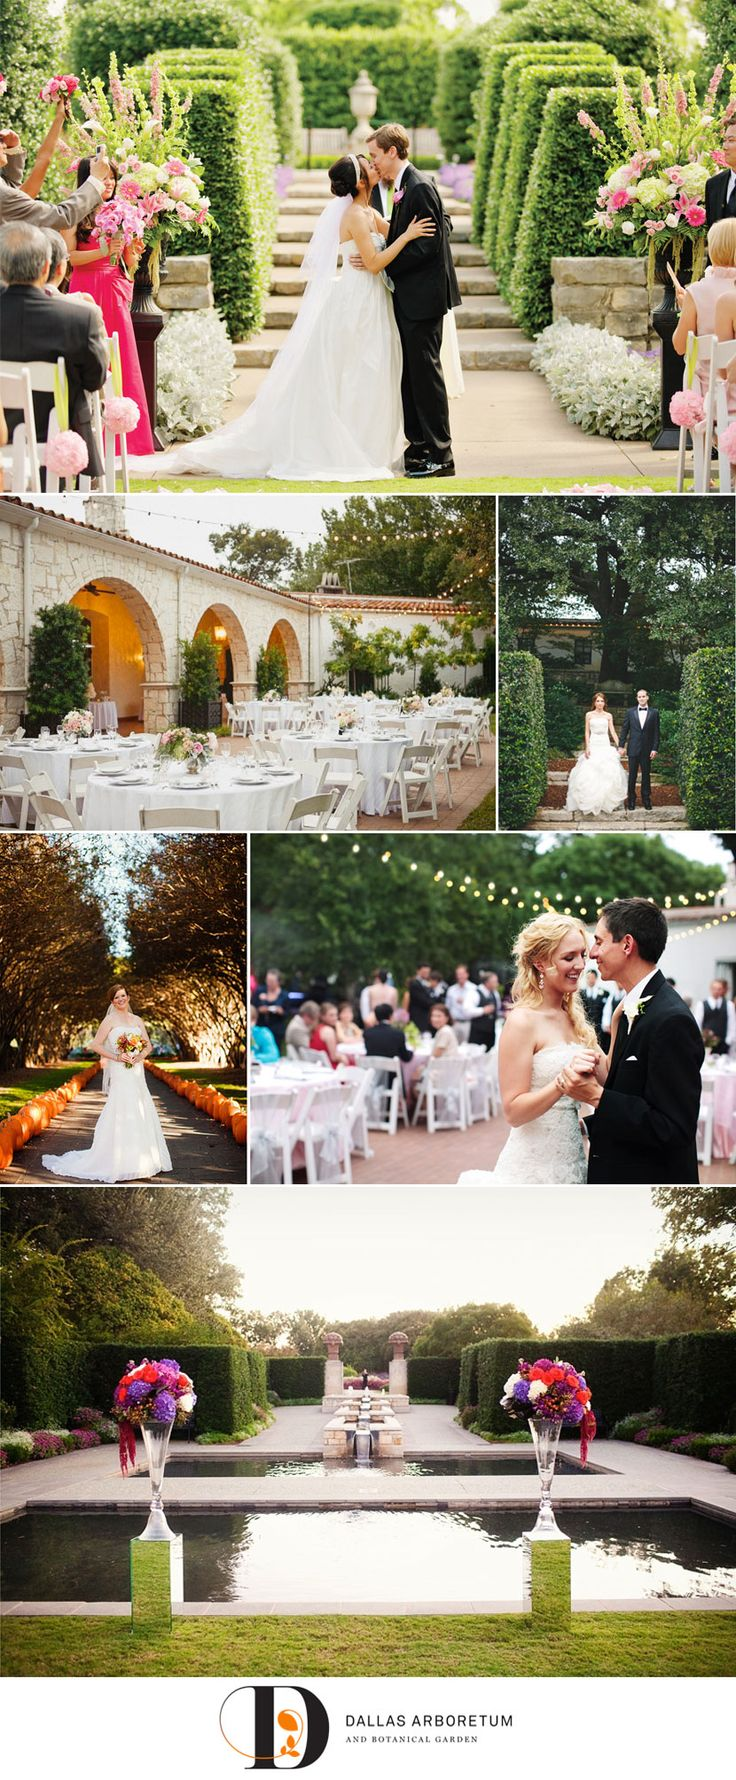 Luxe Location: Dallas Arboretum & Botanical Garden #wedding #luxelocation #garden